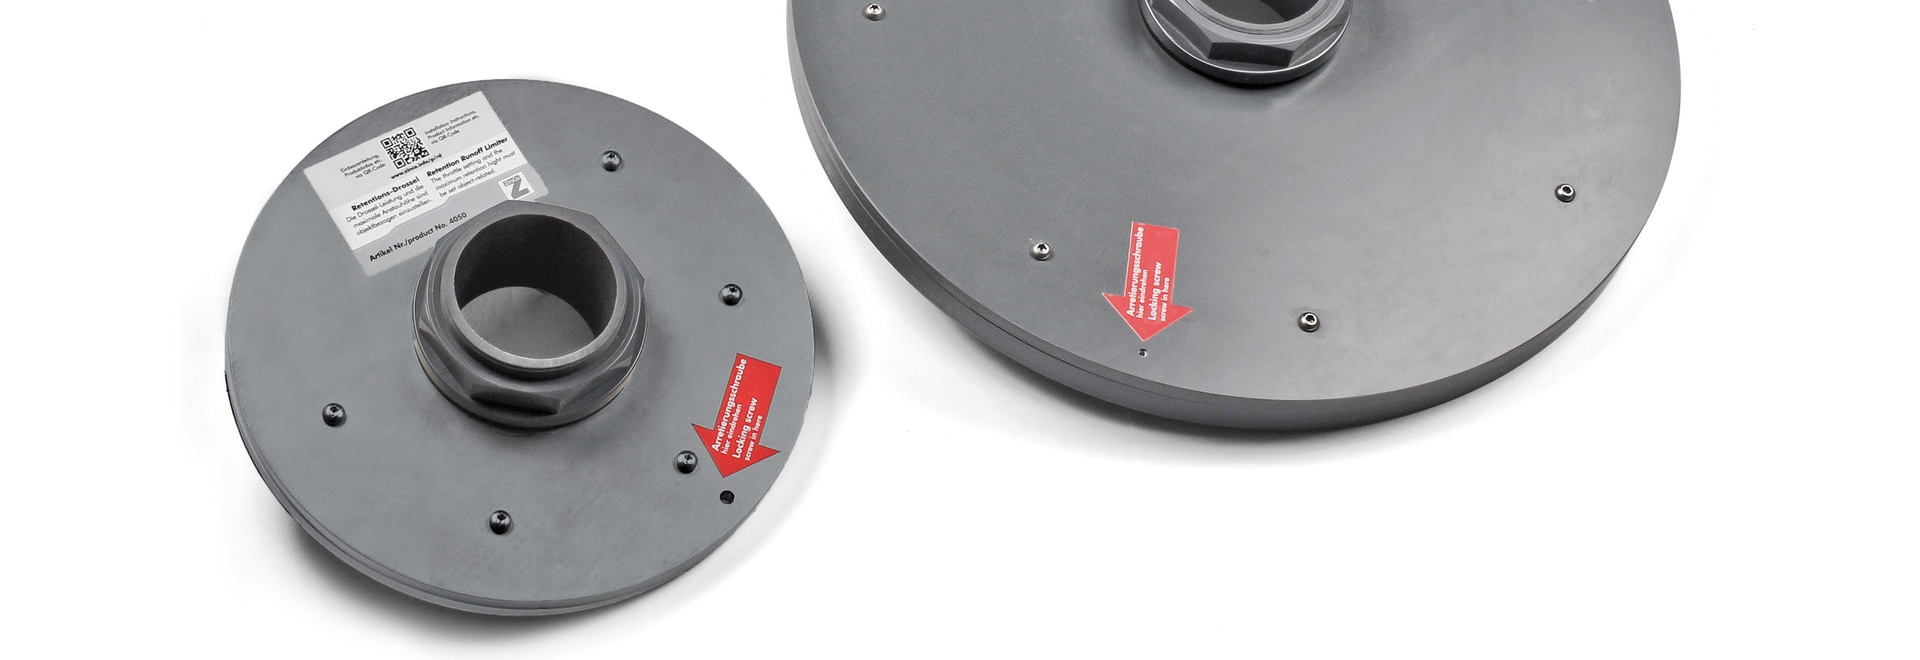 The Run-off Limiters RD 28 (left) and RD 48 (right) seen from above. The red arrow indicates the locking option.